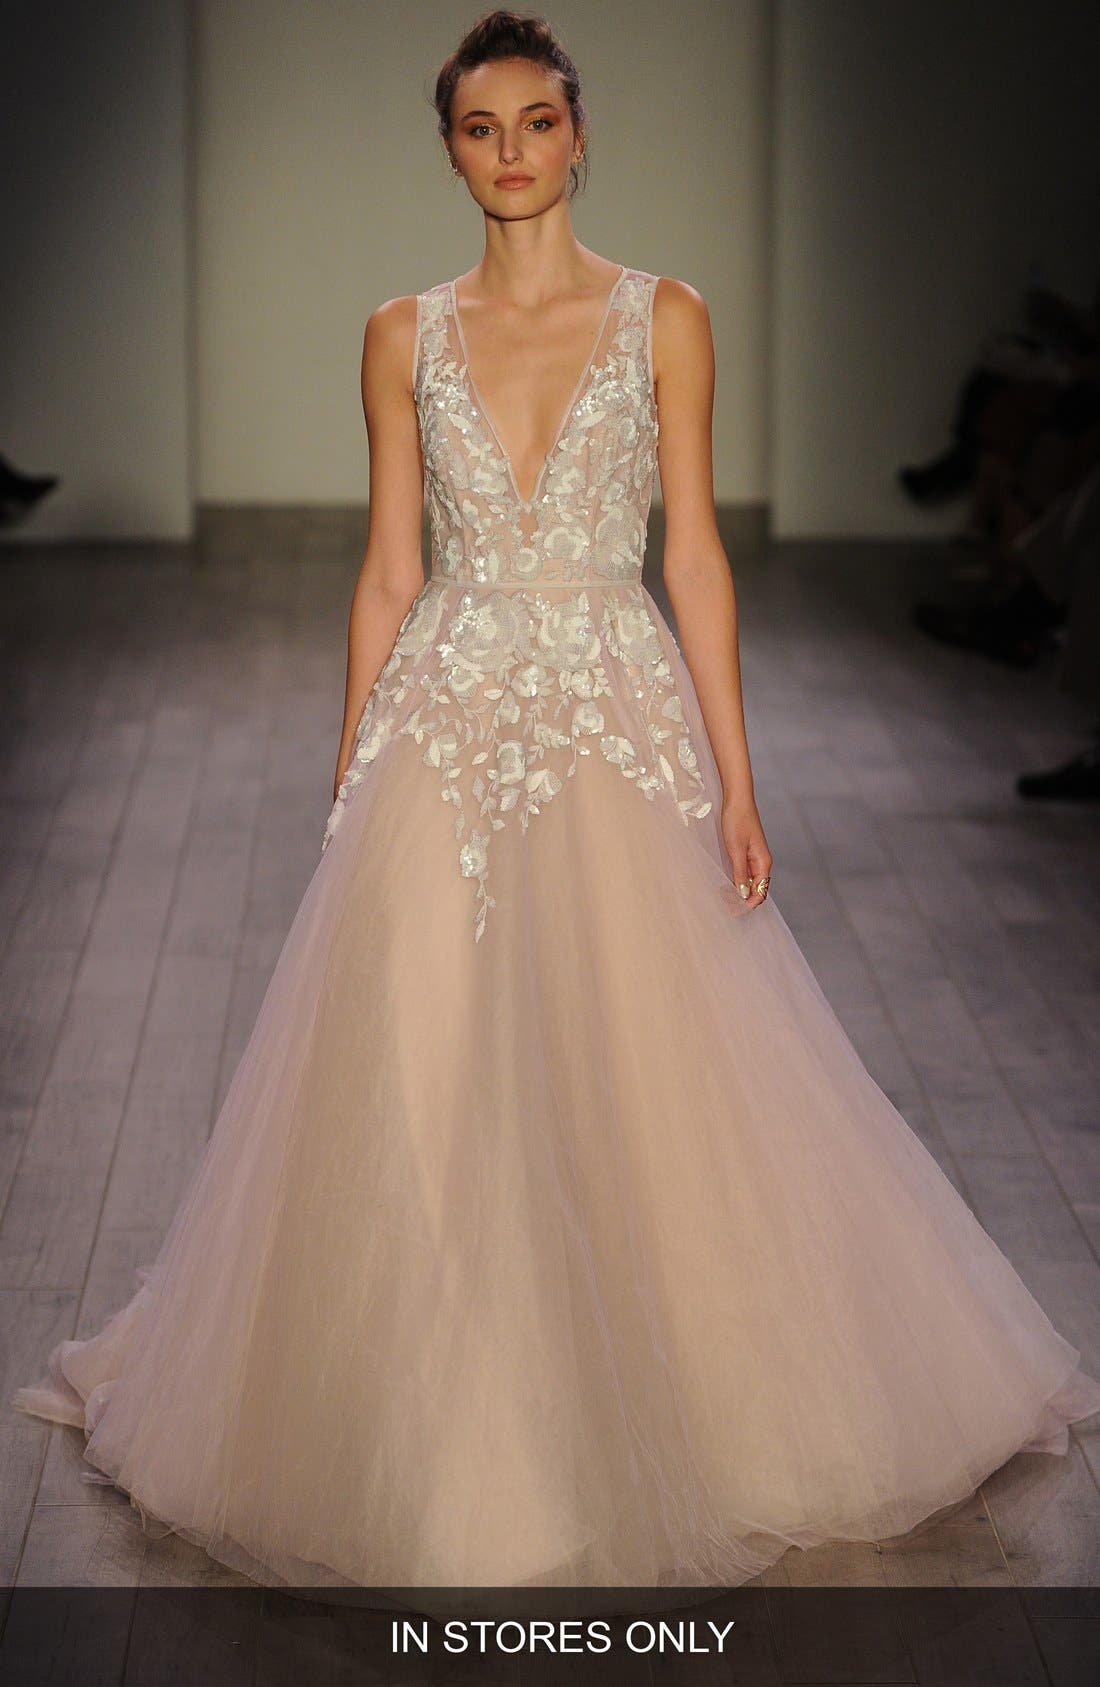 Hayley Paige 'Leah' Floral Sequin V-Neck Tulle Ballgown (In Stores Only)